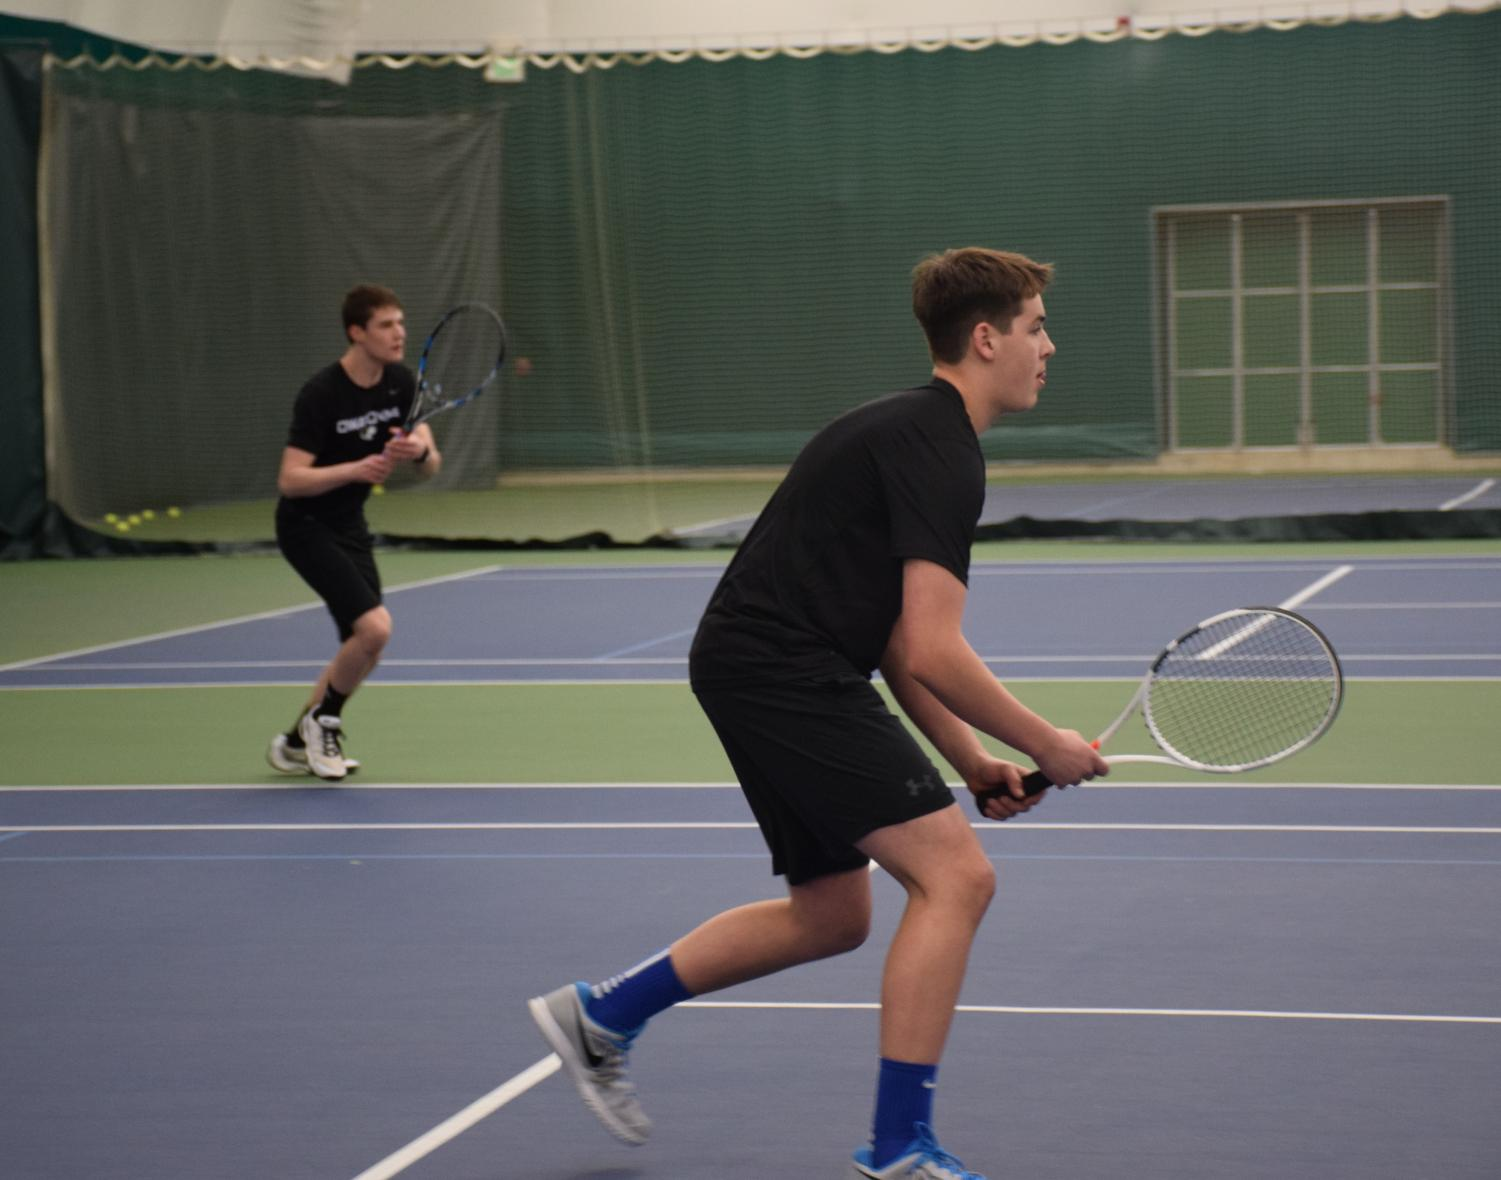 Boys tennis forced to practice indoors due to snowy weather